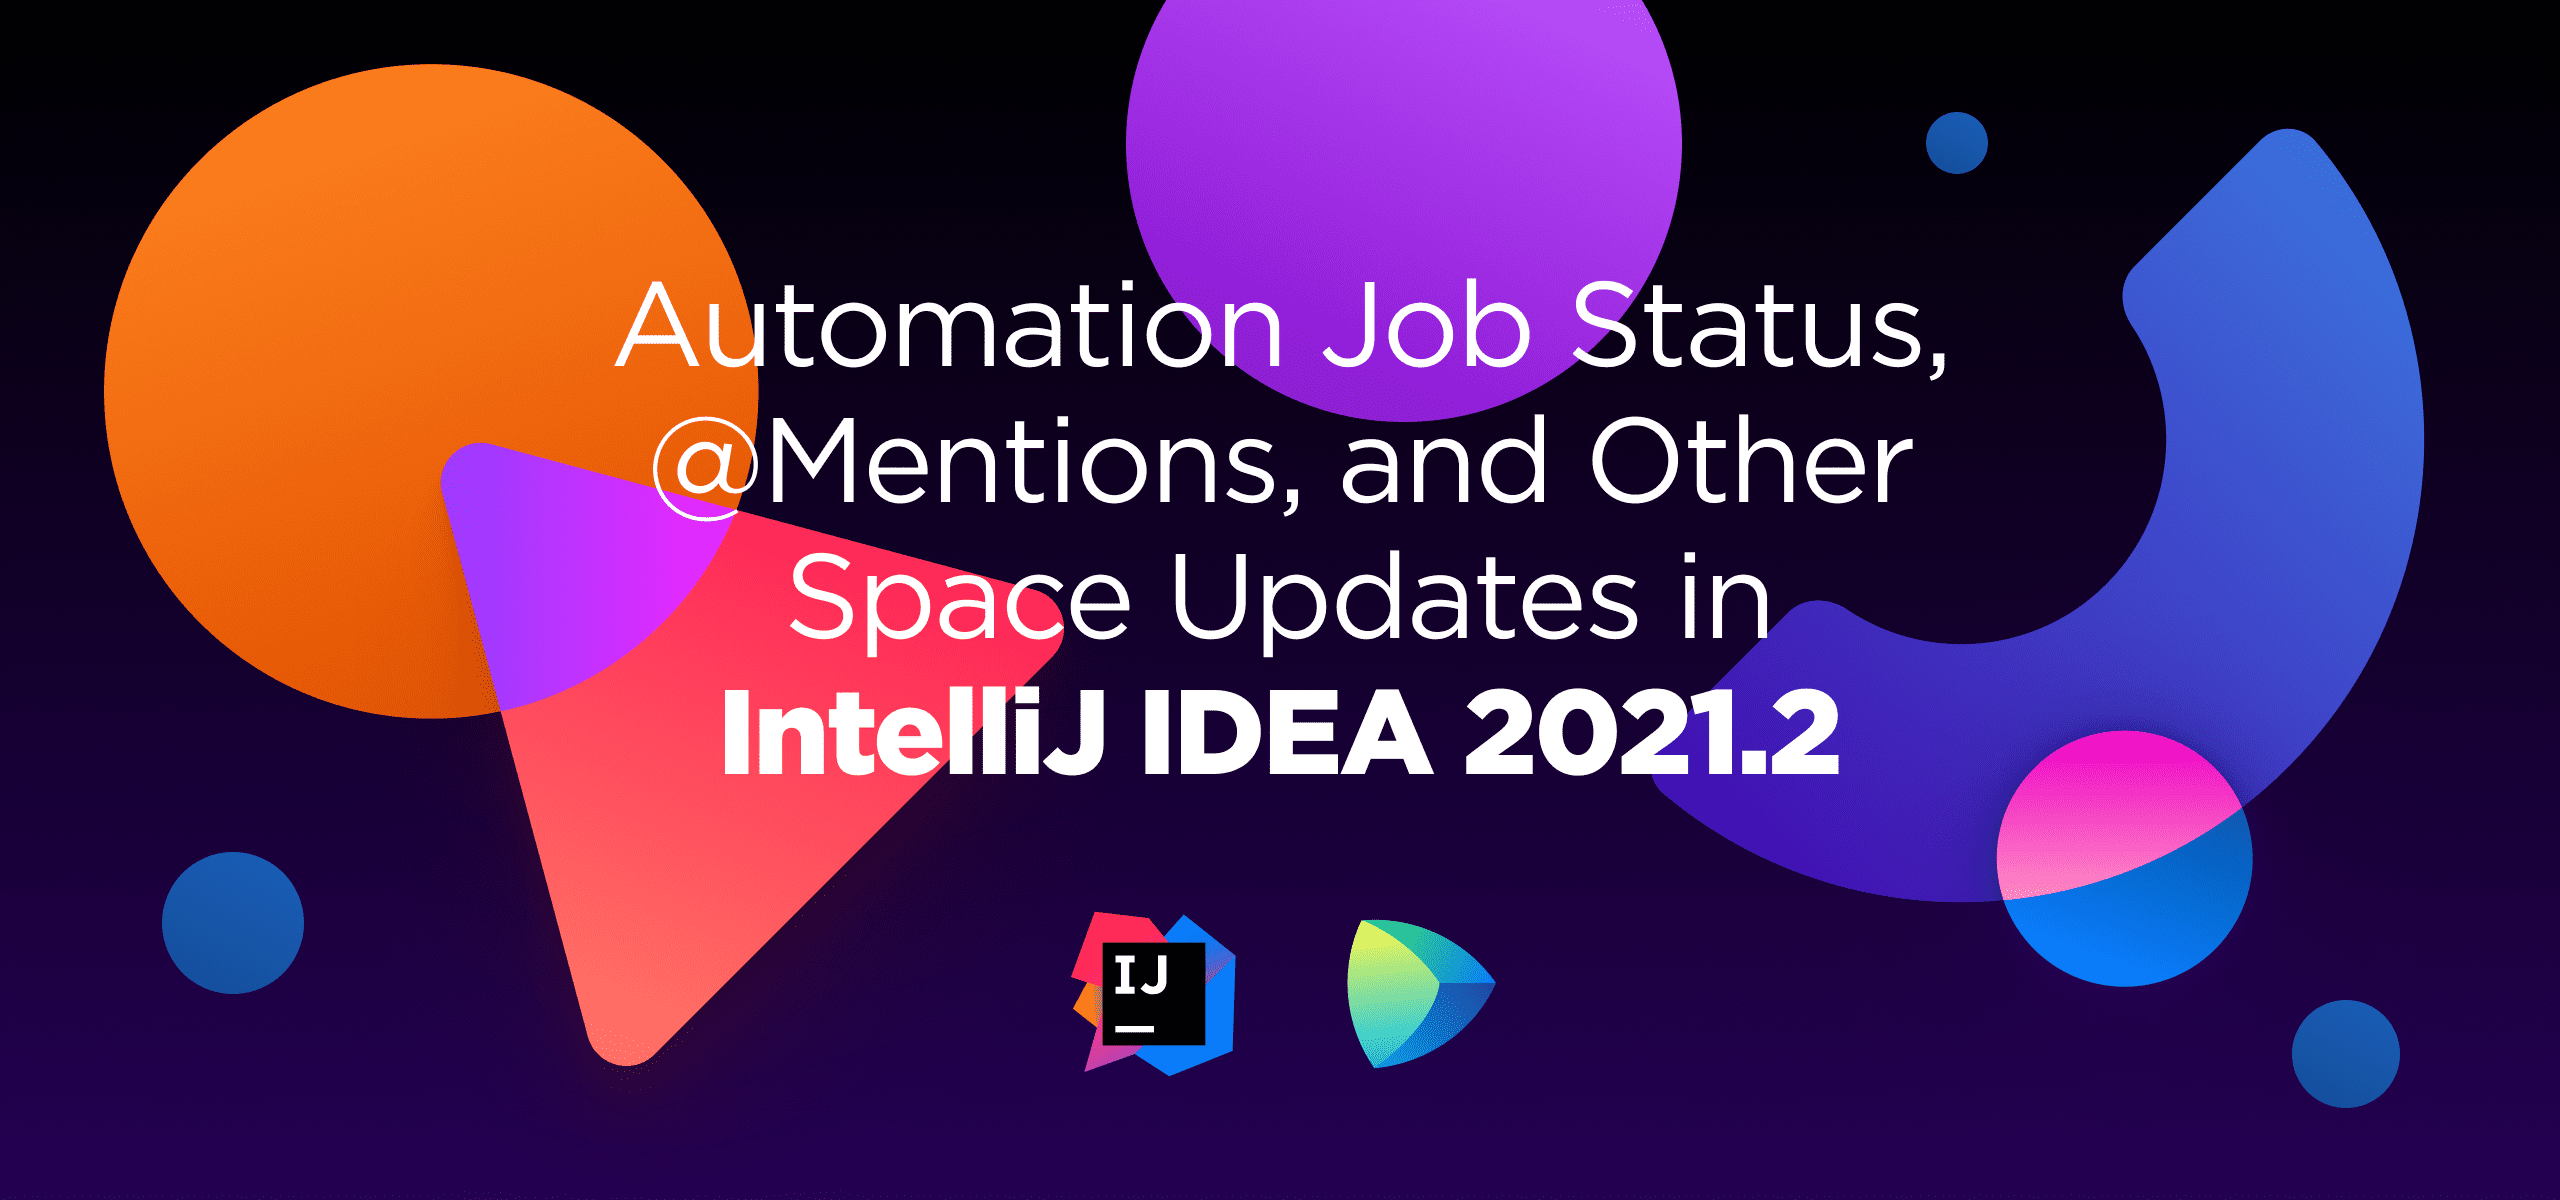 Automation Job Status, @Mentions, and Other Space Updates in IntelliJ IDEA 2021.2